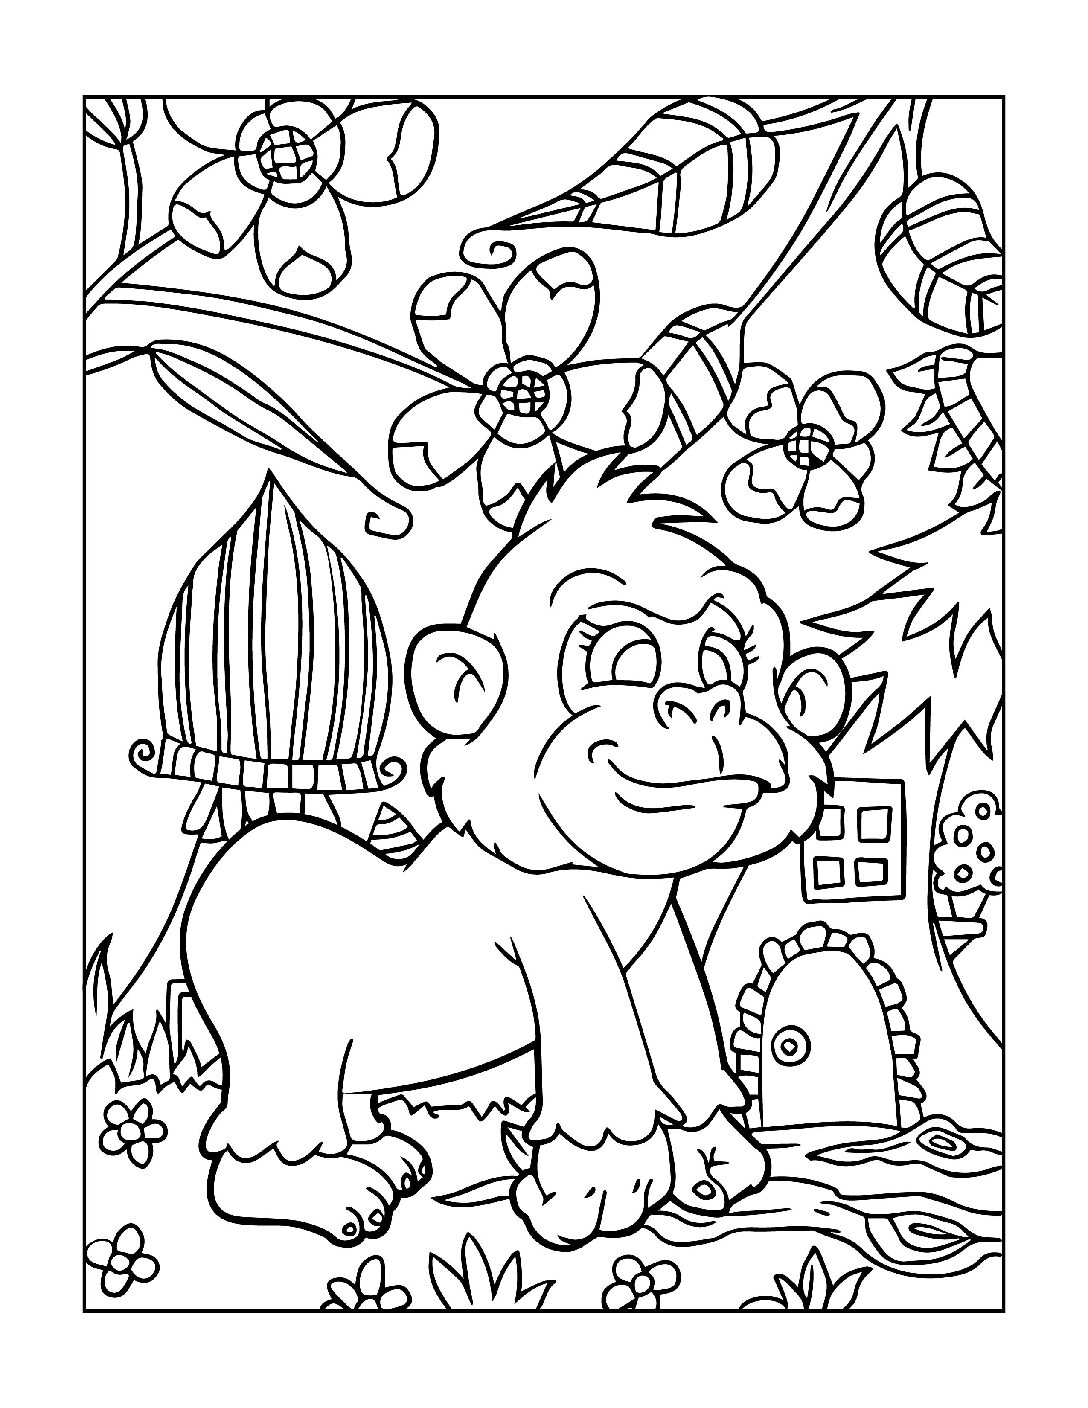 Coloring-Pages-Zoo-Animals-7-01-1-pdf Free Printable  Zoo Animals Colouring Pages